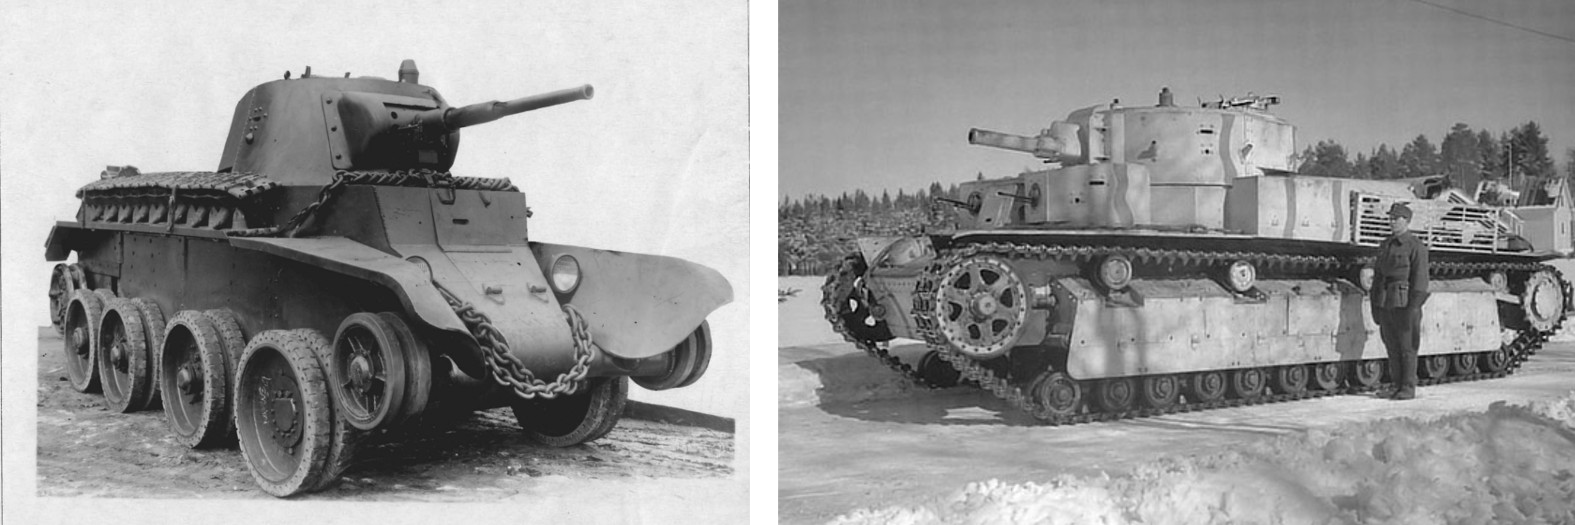 T-28_BT-7M.png